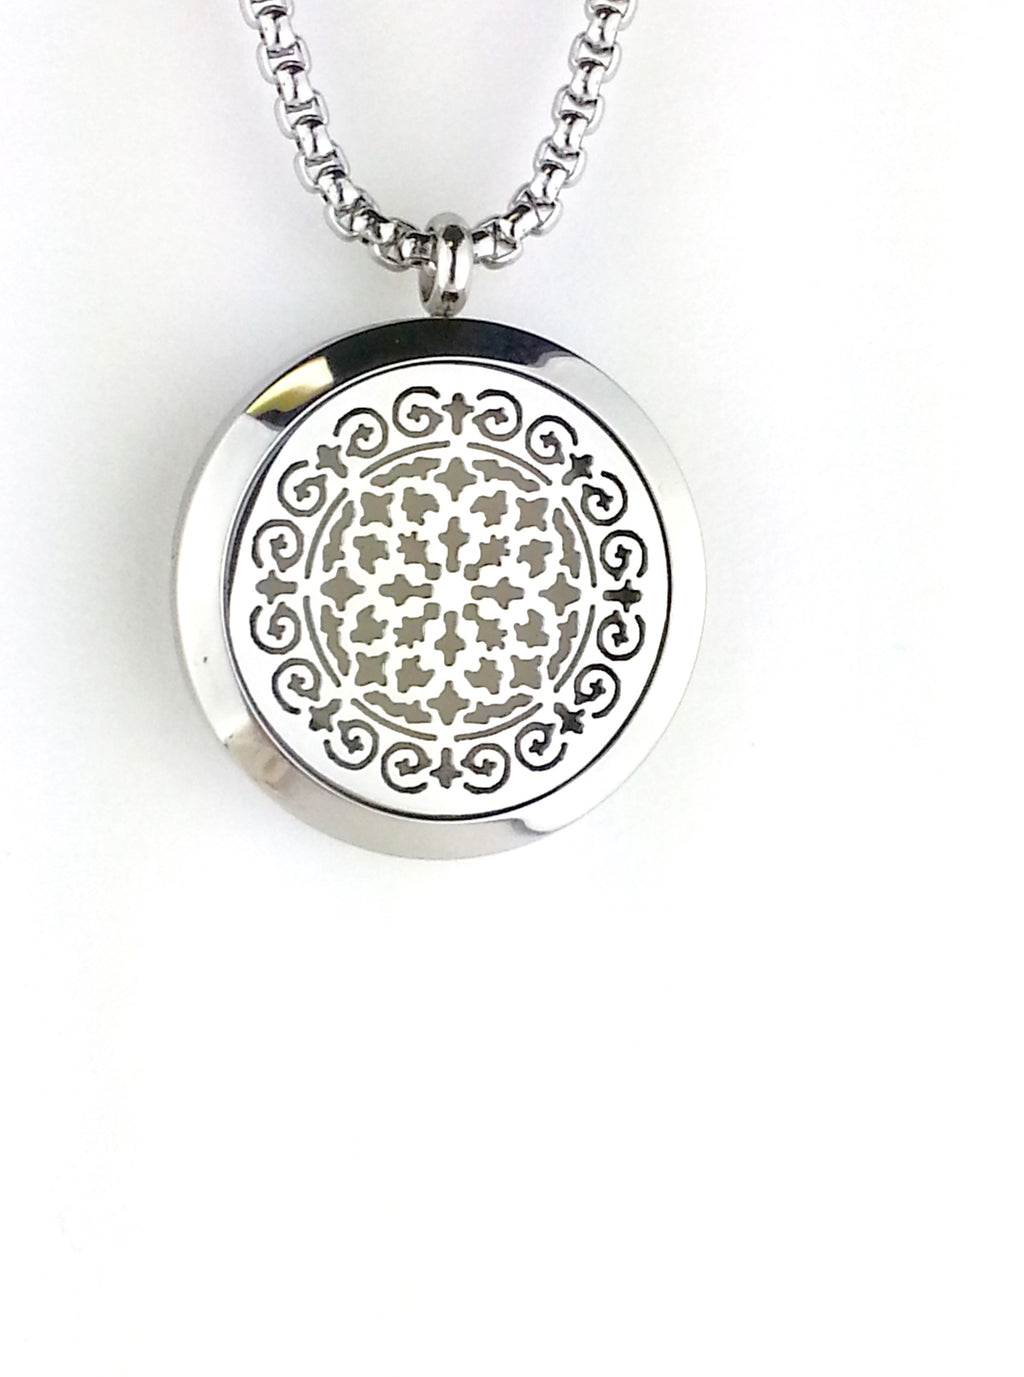 Spanish tile essential oil diffuser necklace from Earth in Wire